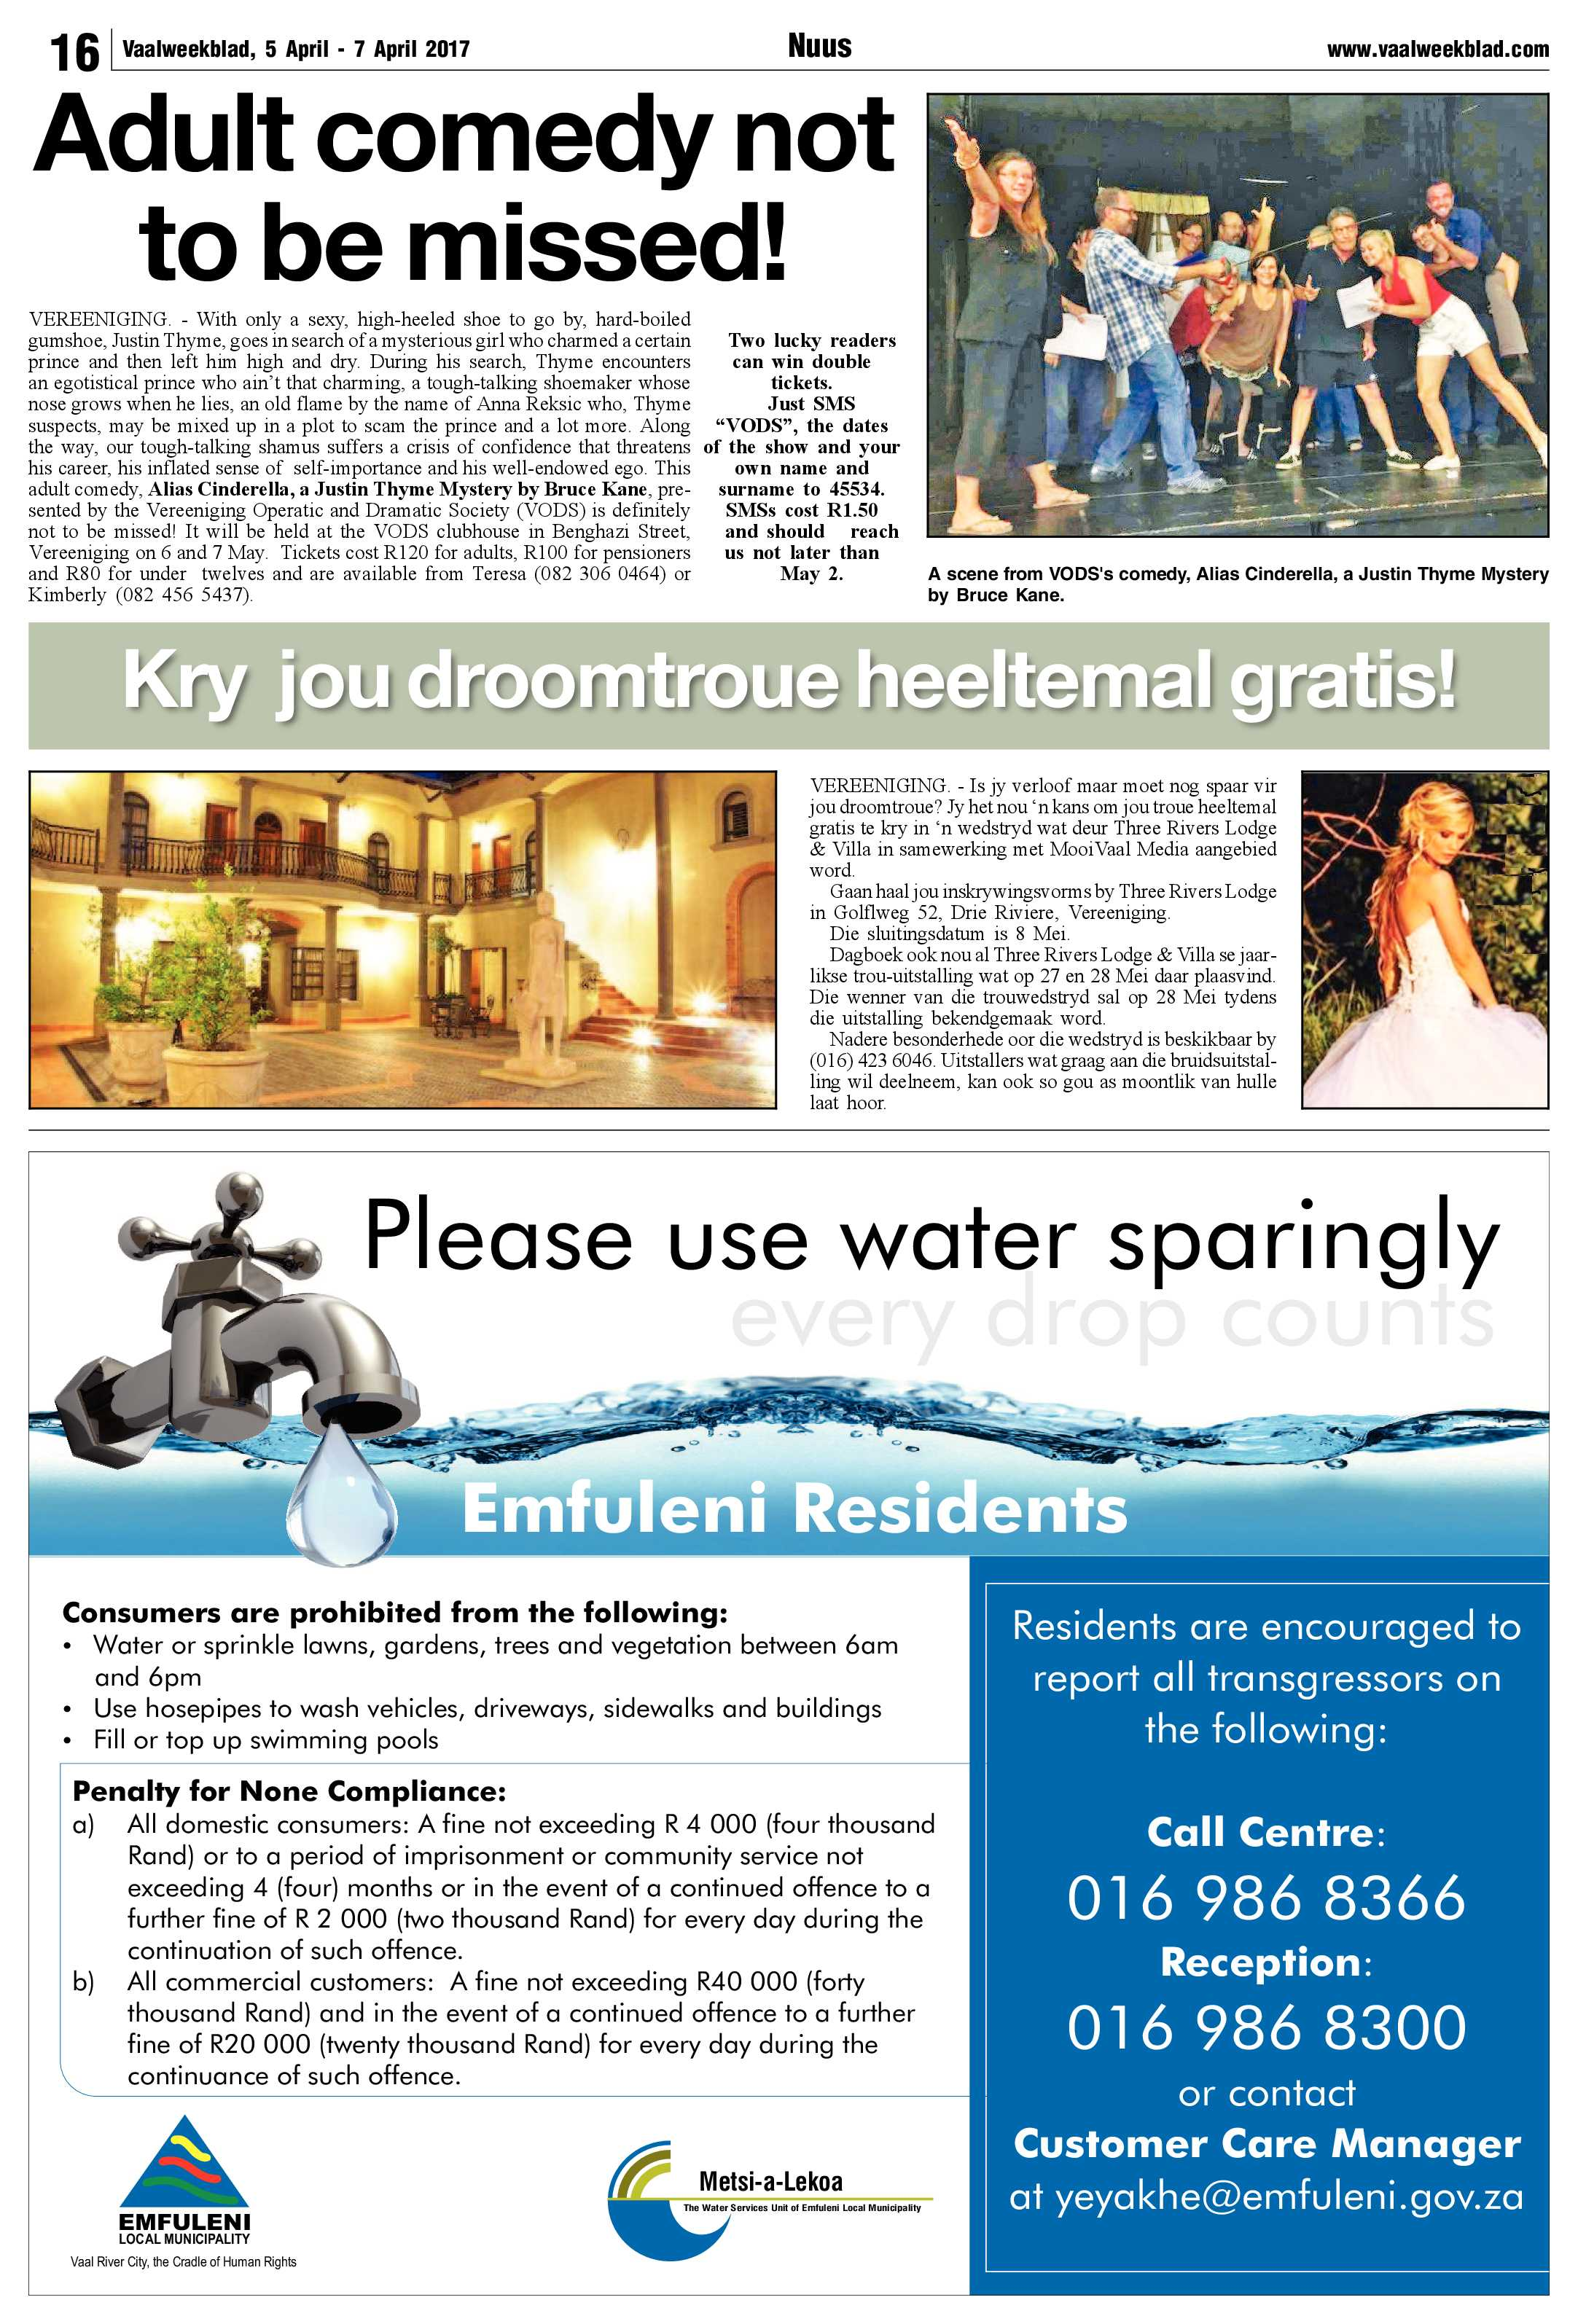 vaalweekblad-5-7-april-2017-2-epapers-page-16